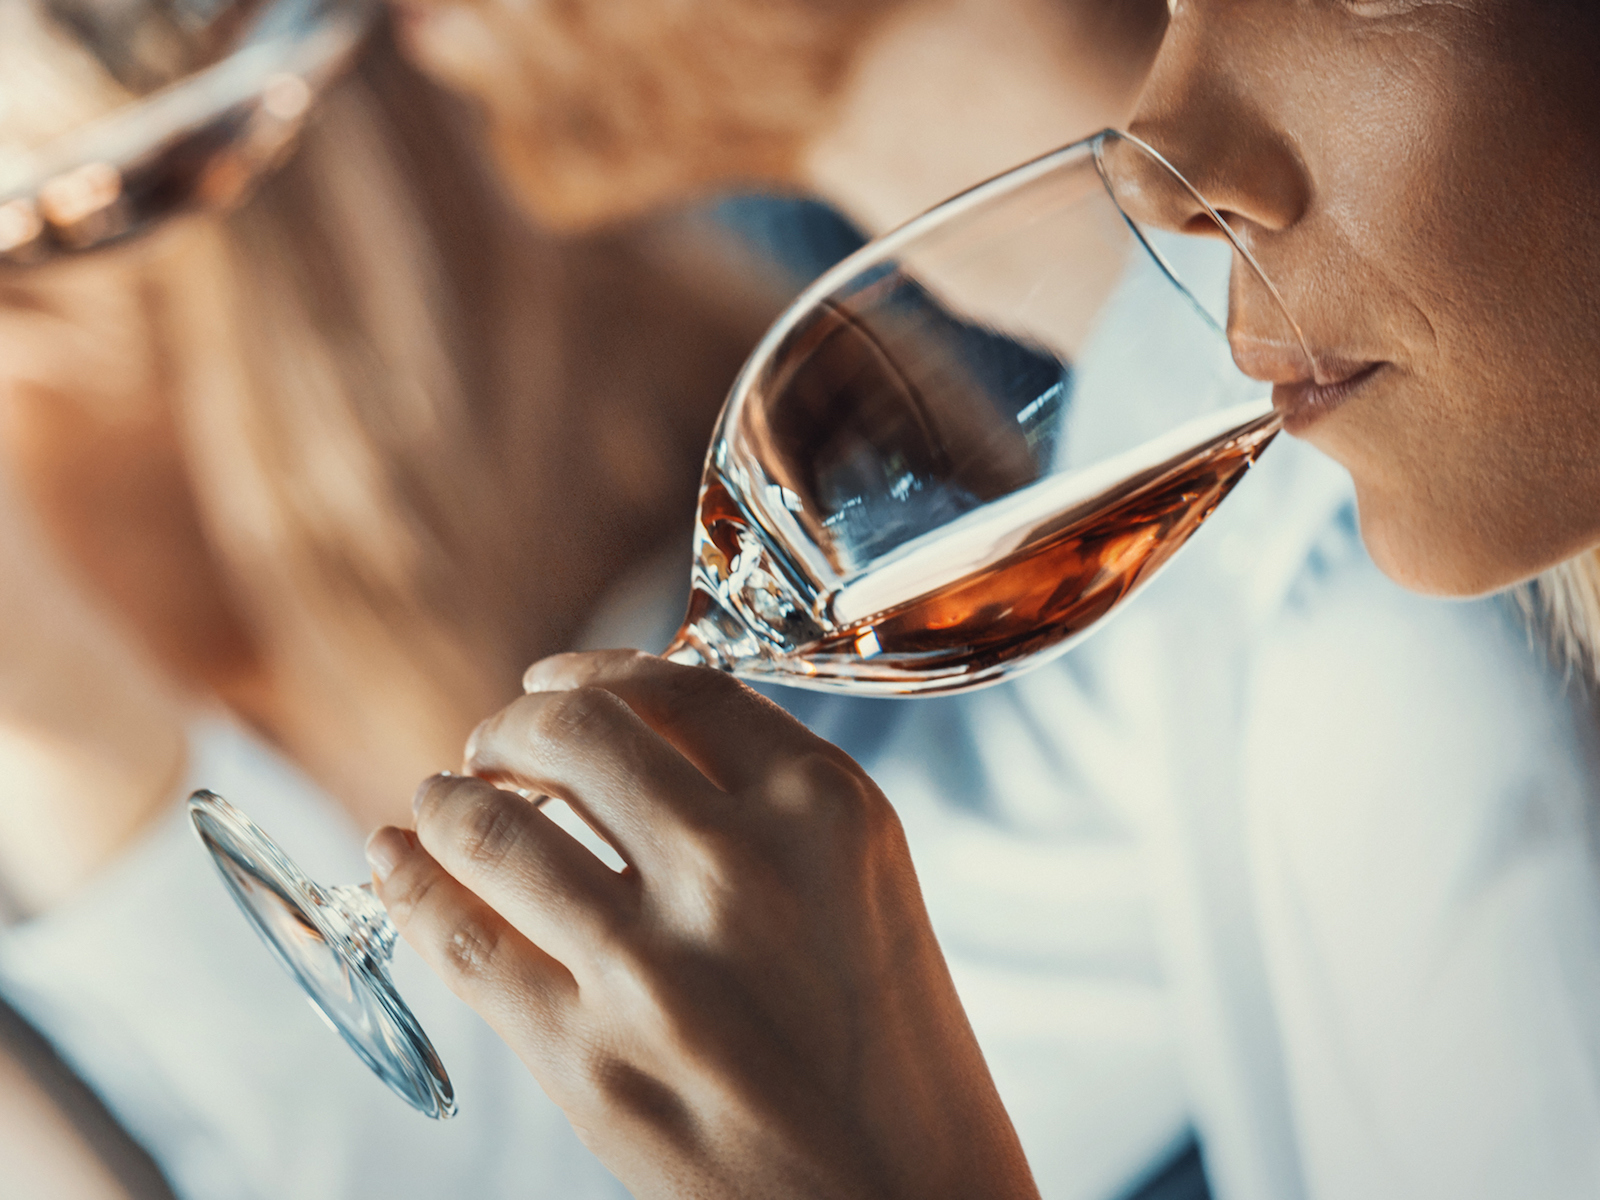 Wine Experts' Tasting Notes Can Vary Based on Where They're From, Study Suggests